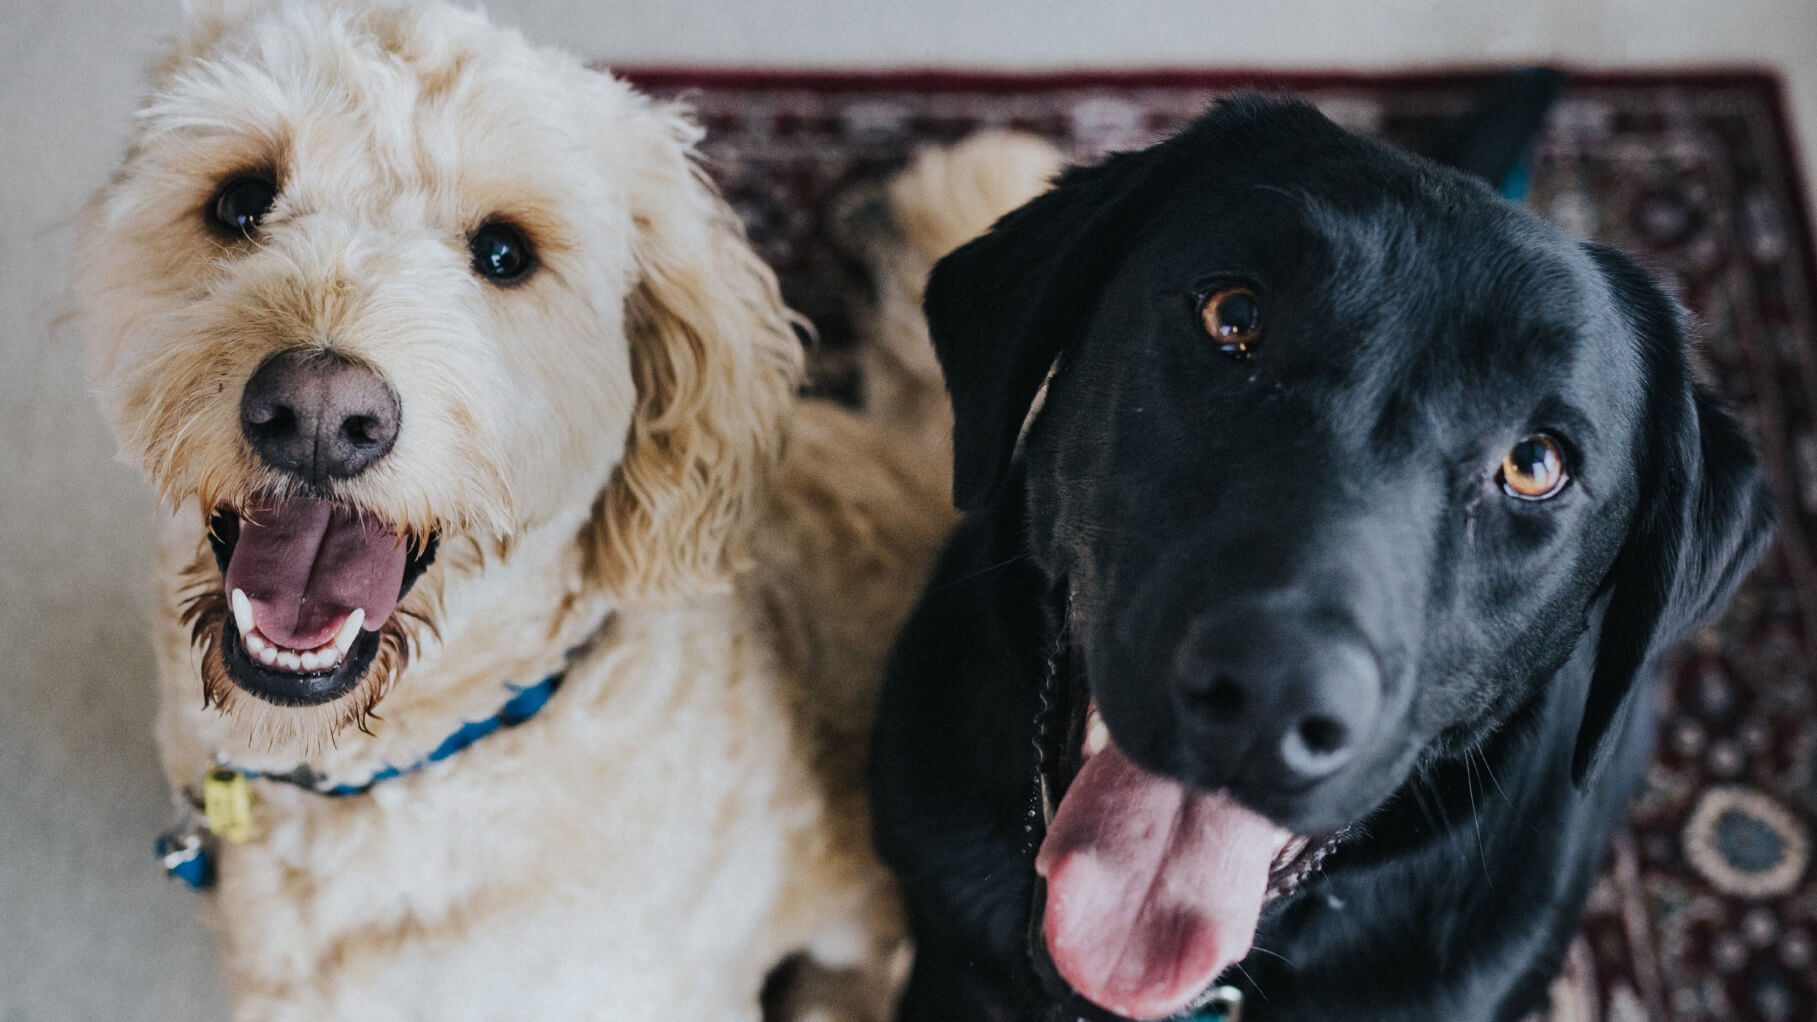 gooldendoodle and black lab sitting together